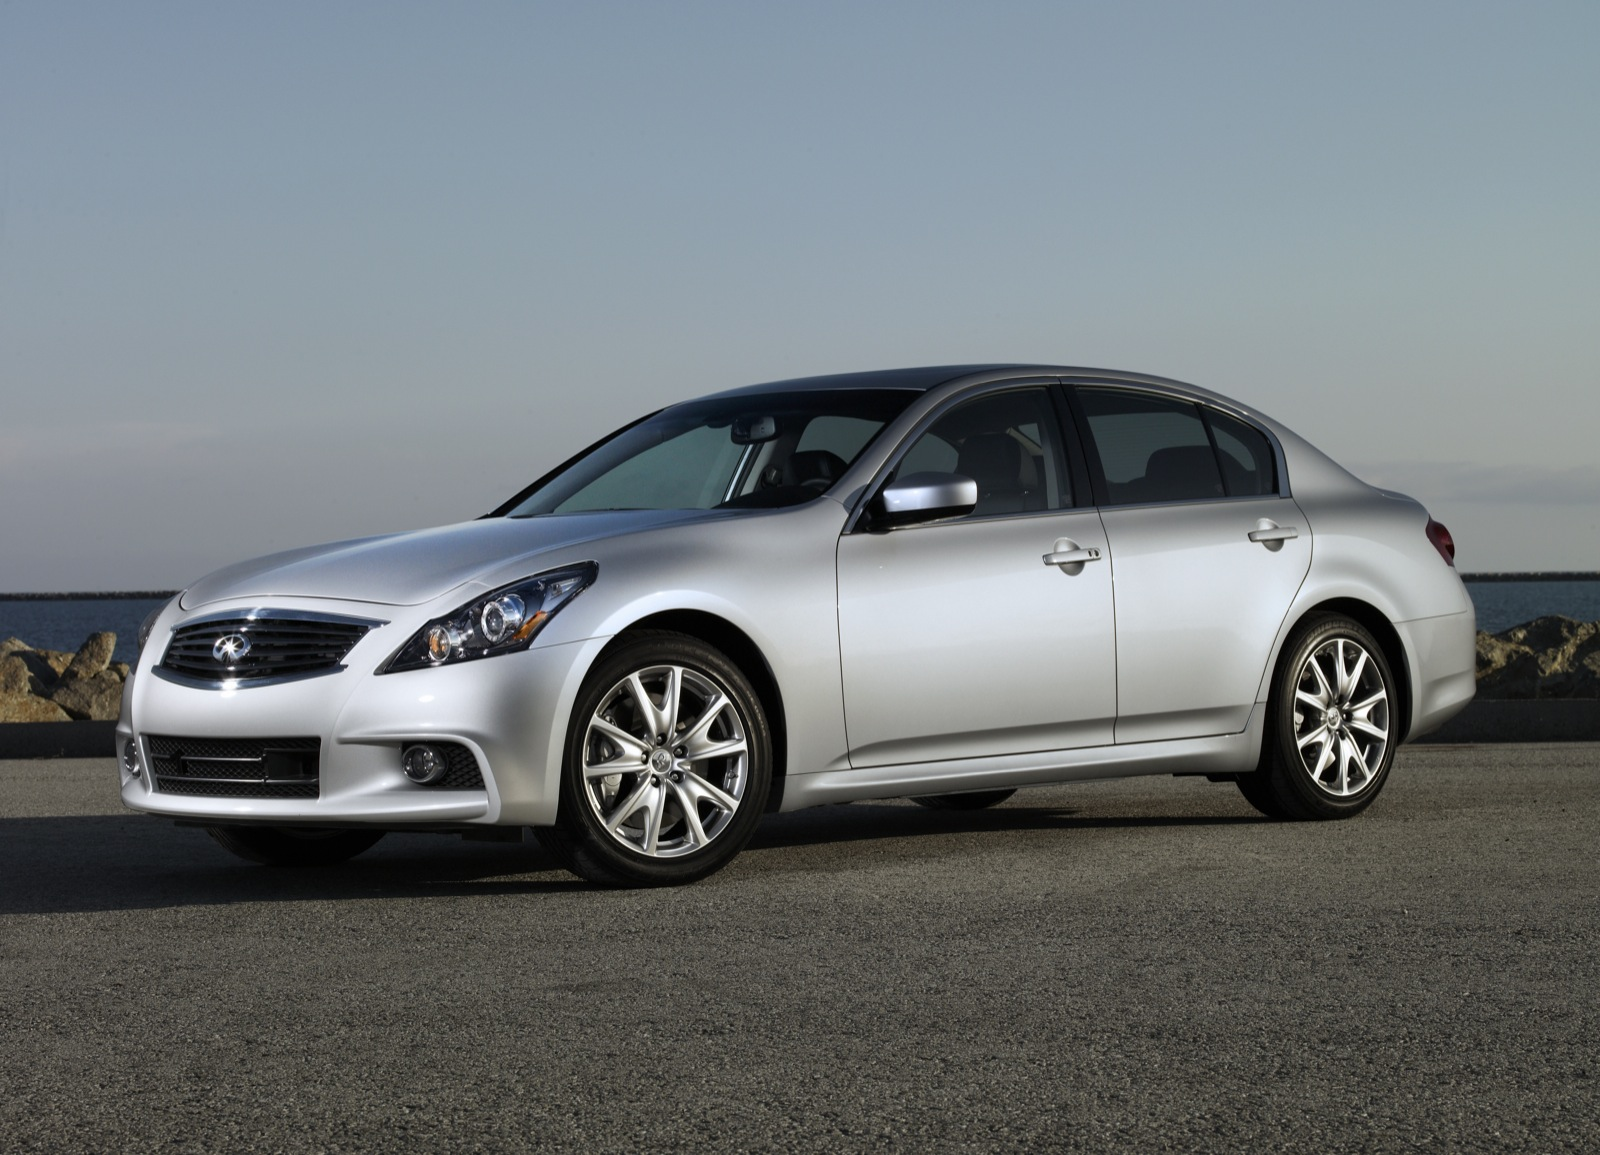 all new 2014 infiniti g37 coming in spring 2013 report. Black Bedroom Furniture Sets. Home Design Ideas